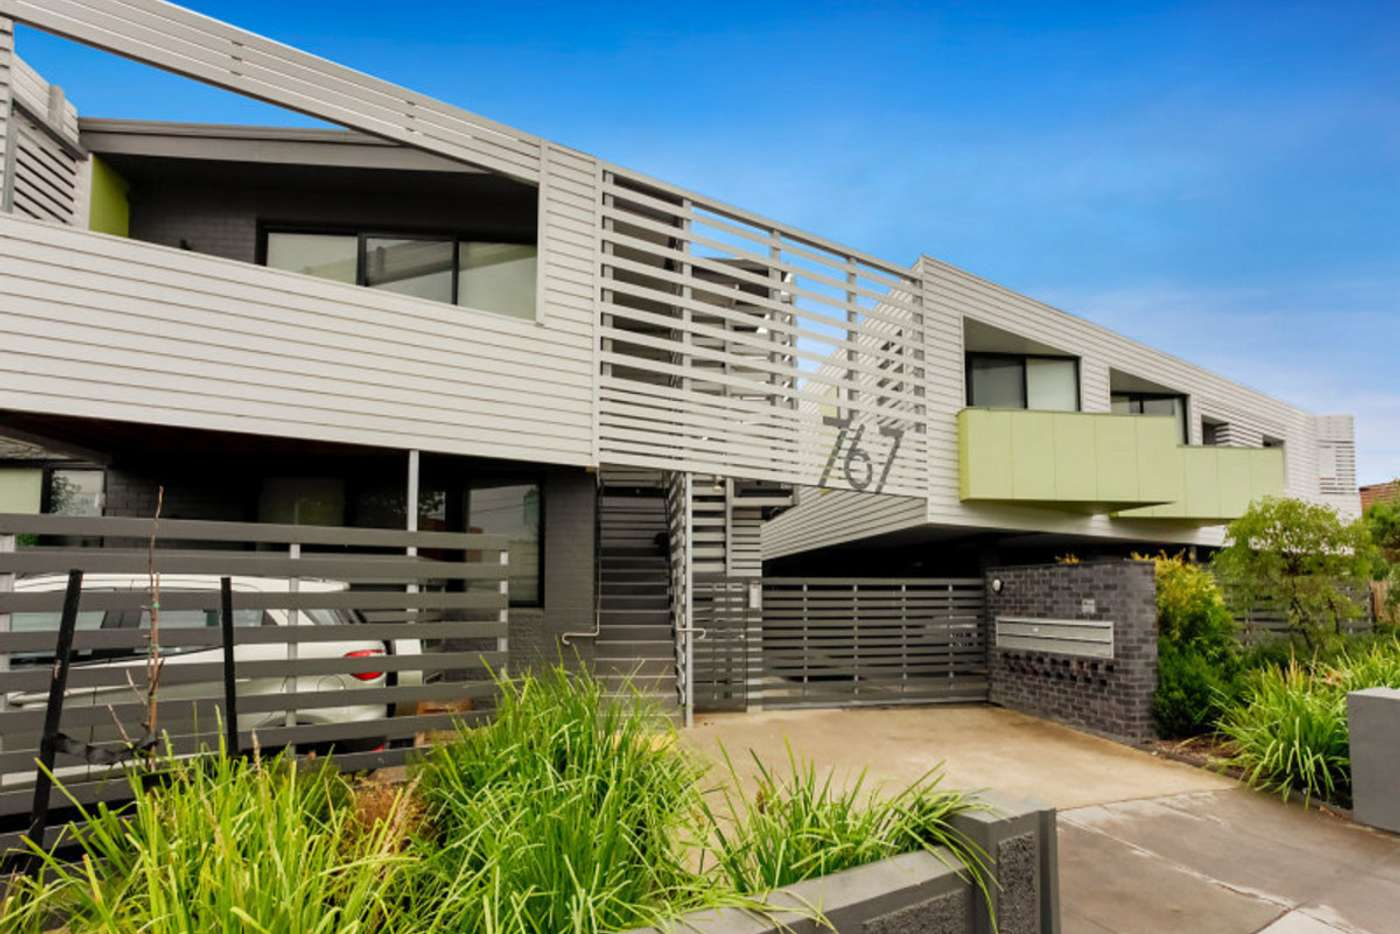 Main view of Homely apartment listing, 12/767 Sydney Road, Coburg VIC 3058